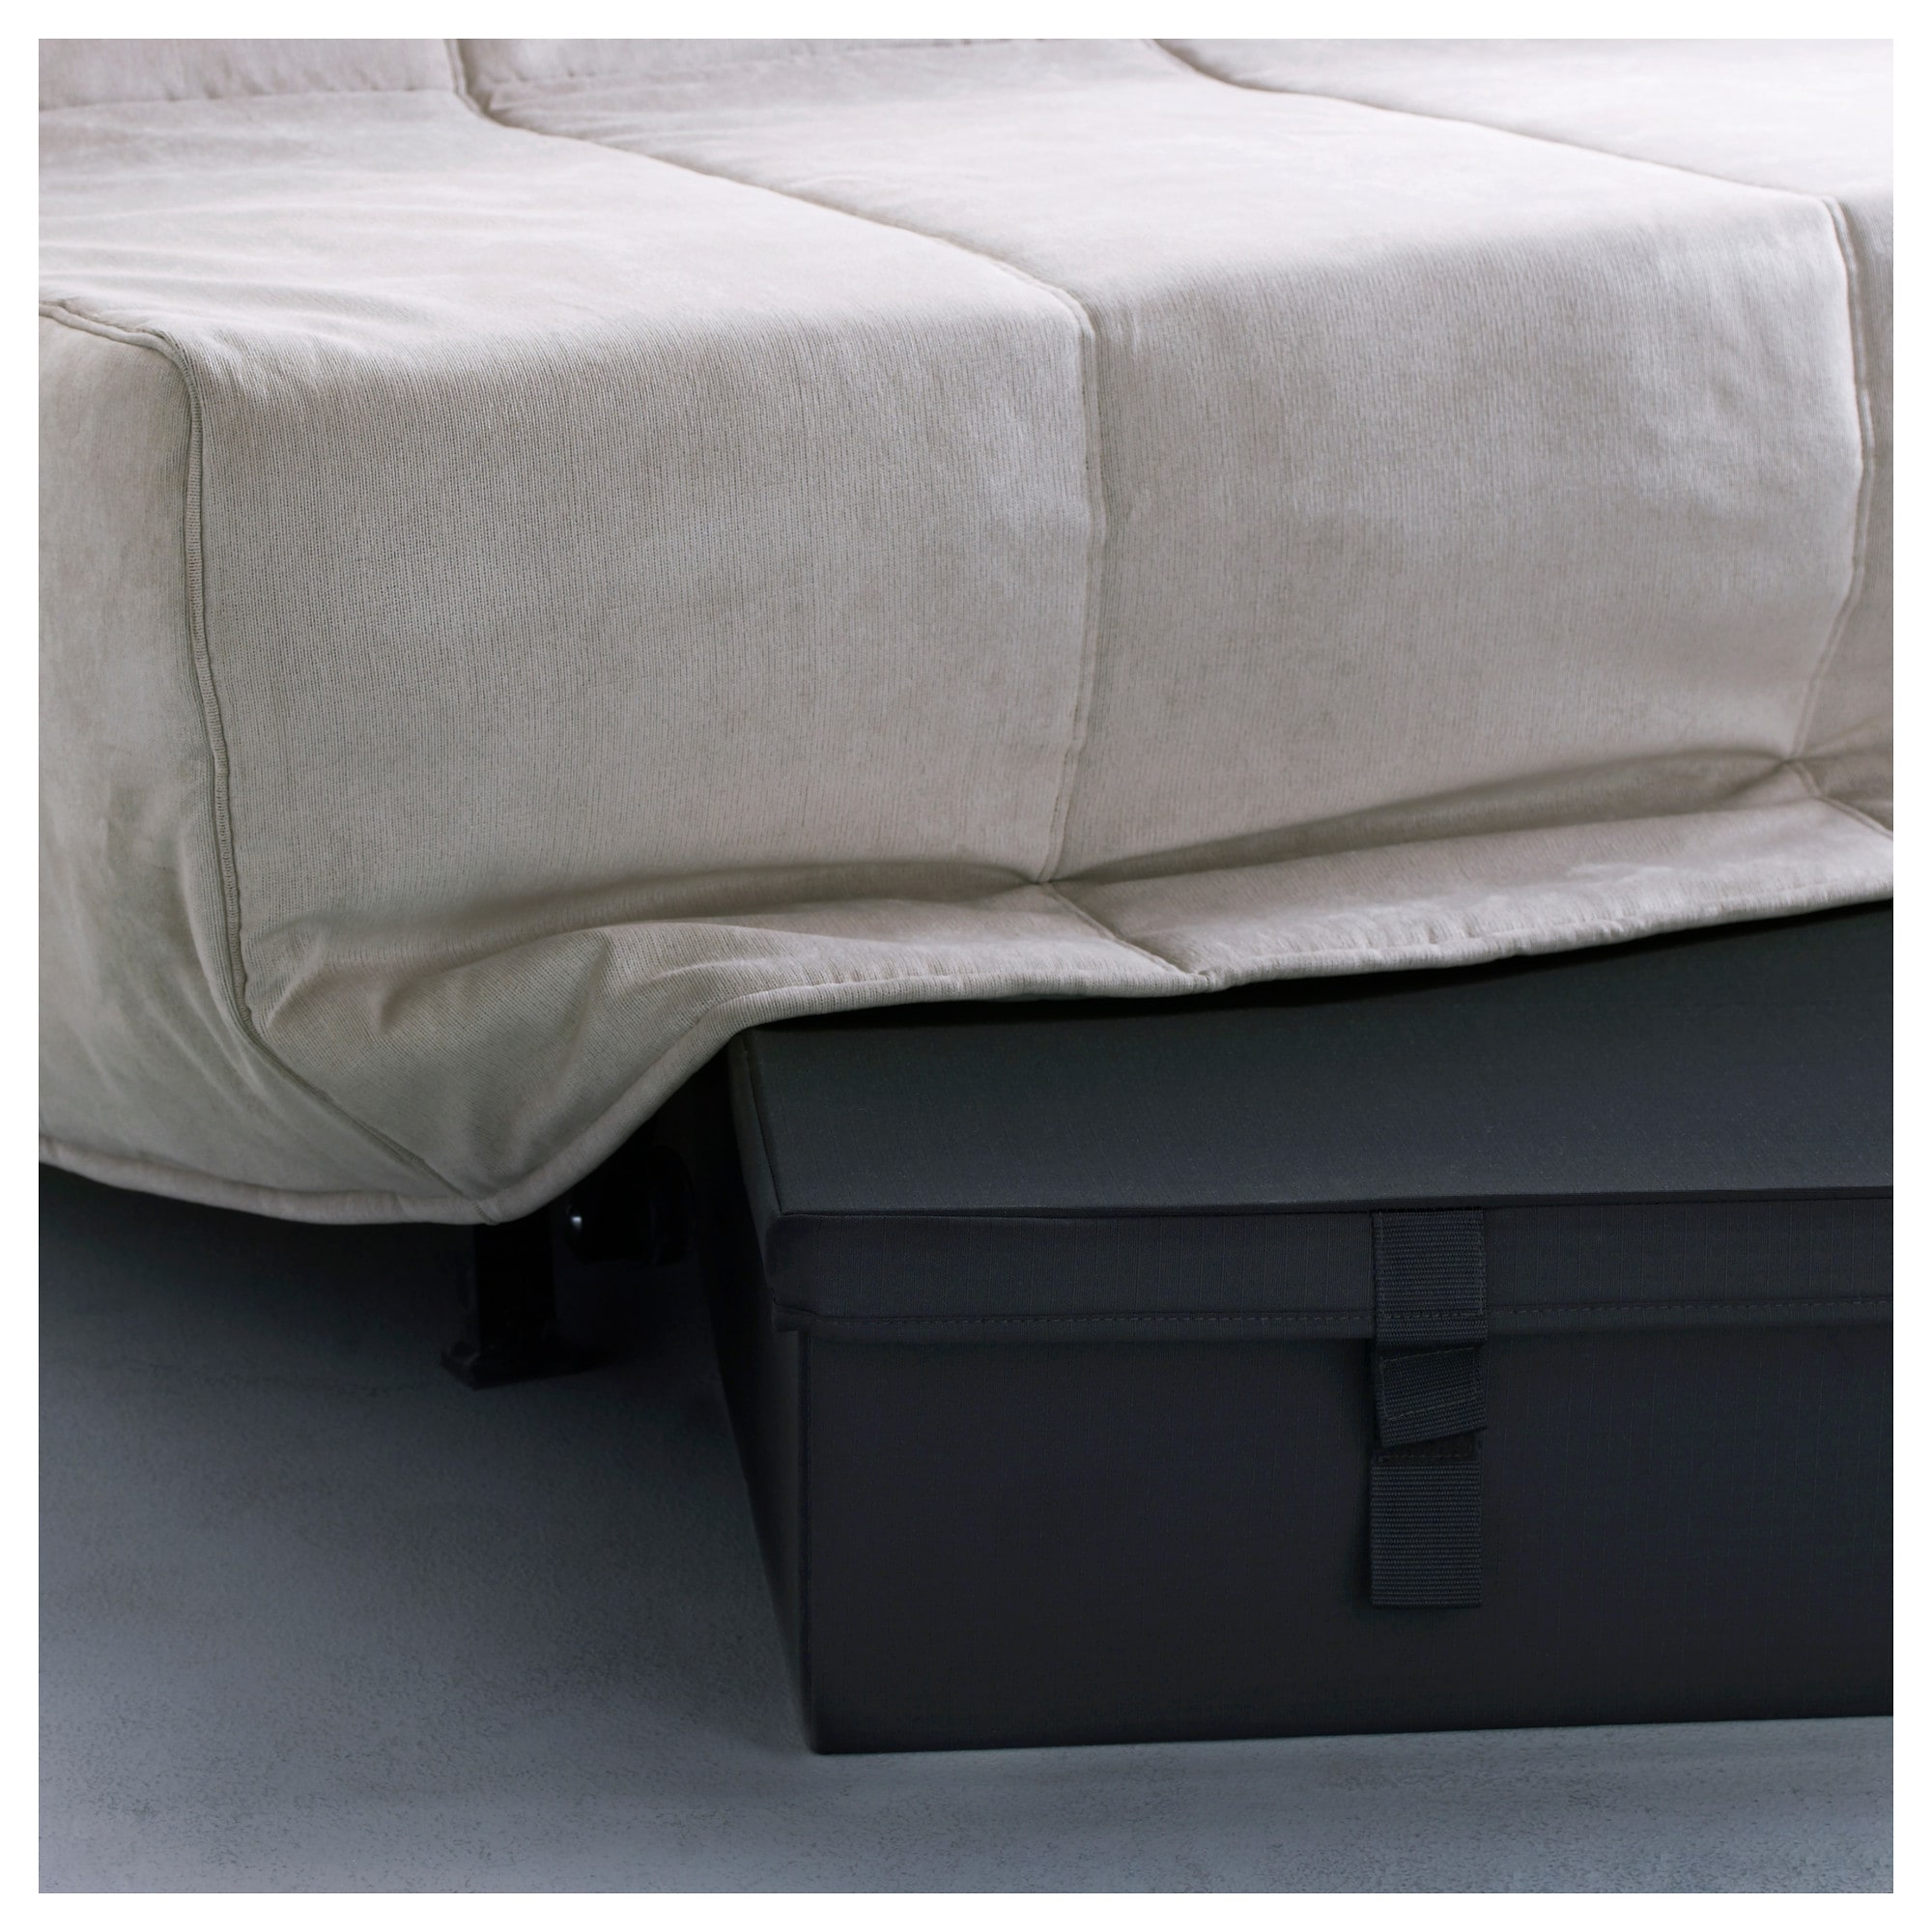 Sofa bed with storage box sitting pretty 6 sofa bed designs to complete your living room thesofa - Ikea sofa bed with storage ...